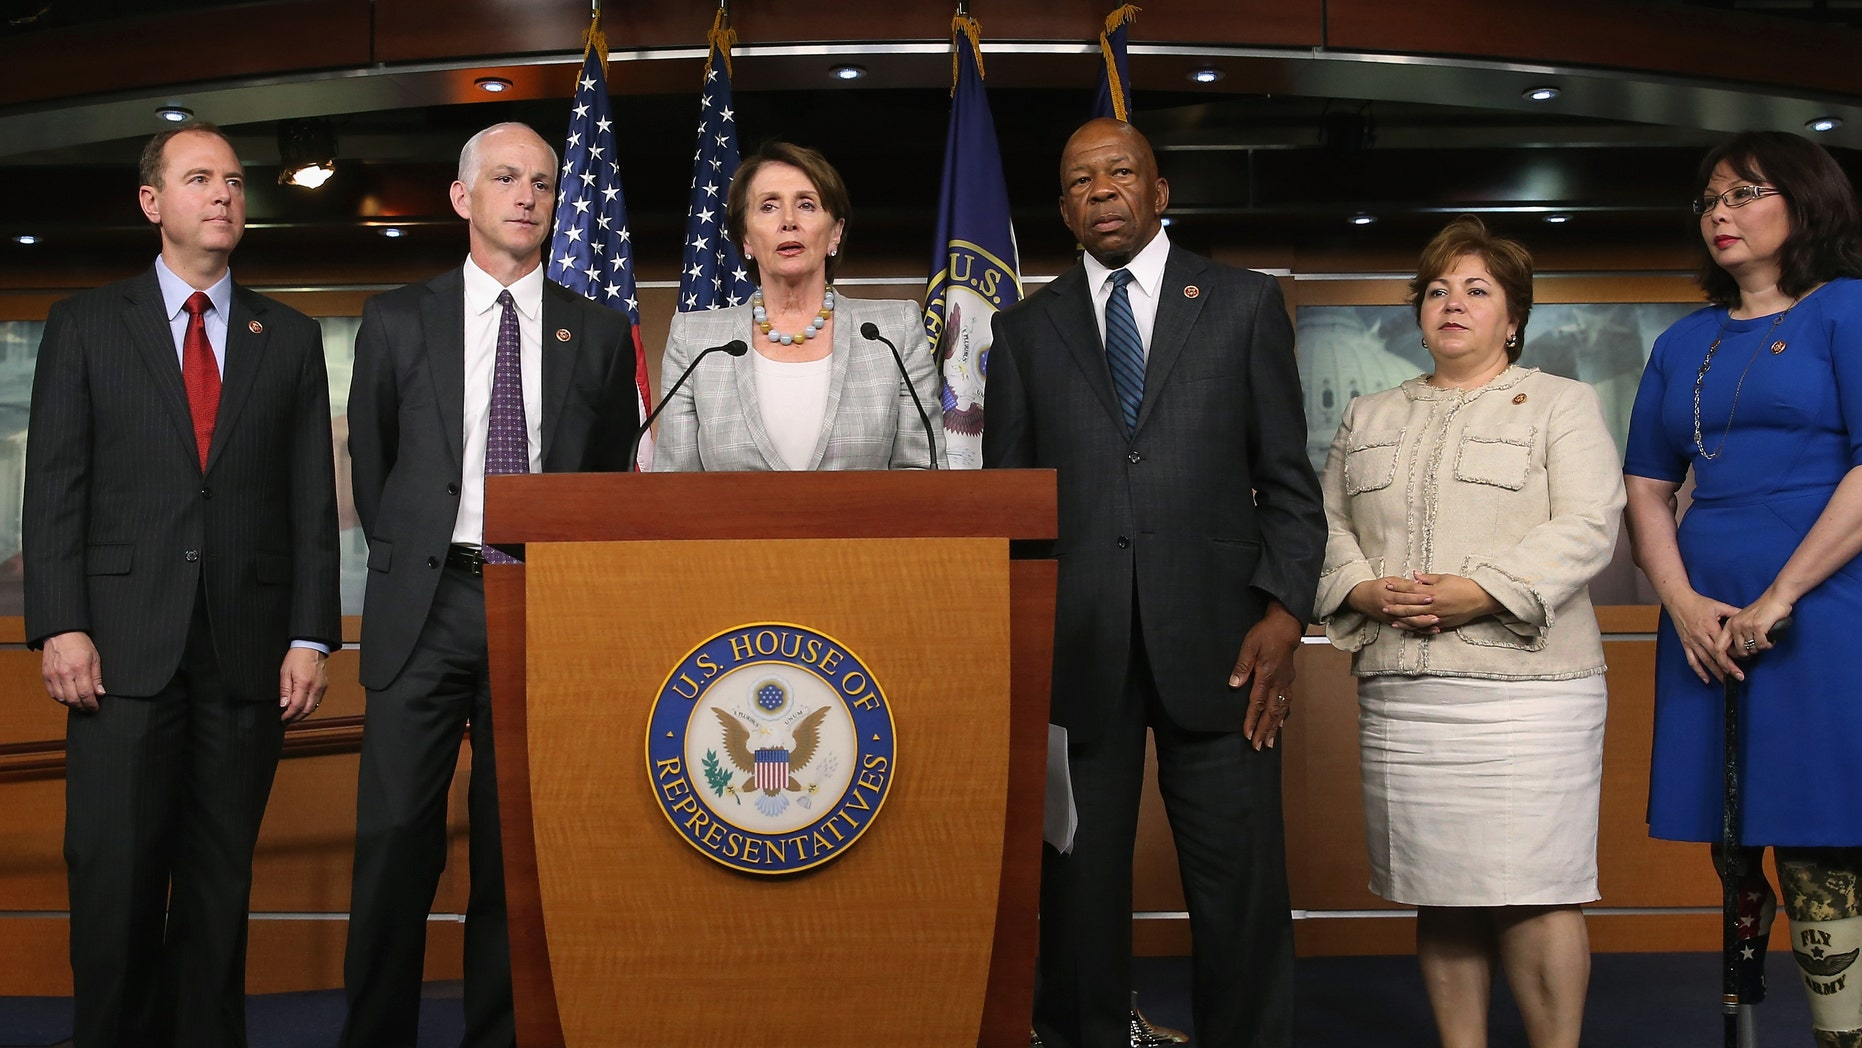 WASHINGTON, DC - MAY 21:  Minority Leader Nancy Pelosi (D-CA) (C) speaks while flanked by five fellow Democrats (L-R) Rep. Rep. Adam B. Schiff (D-CA), Rep. Adam Smith (D-WA), Rep. Elijah E. Cummings (D-MD), Rep. Linda Sanchez, (D-CA) and Rep. Tammy Duckworth (D-IL) during a news conference on Capitol Hill, May 21, 2014 in Washington, DC. Leader Pelosi named the five Democrats to serve on the special committee looking into the 2012 attack in Benghazi, Libya.  (Photo by Mark Wilson/Getty Images,)